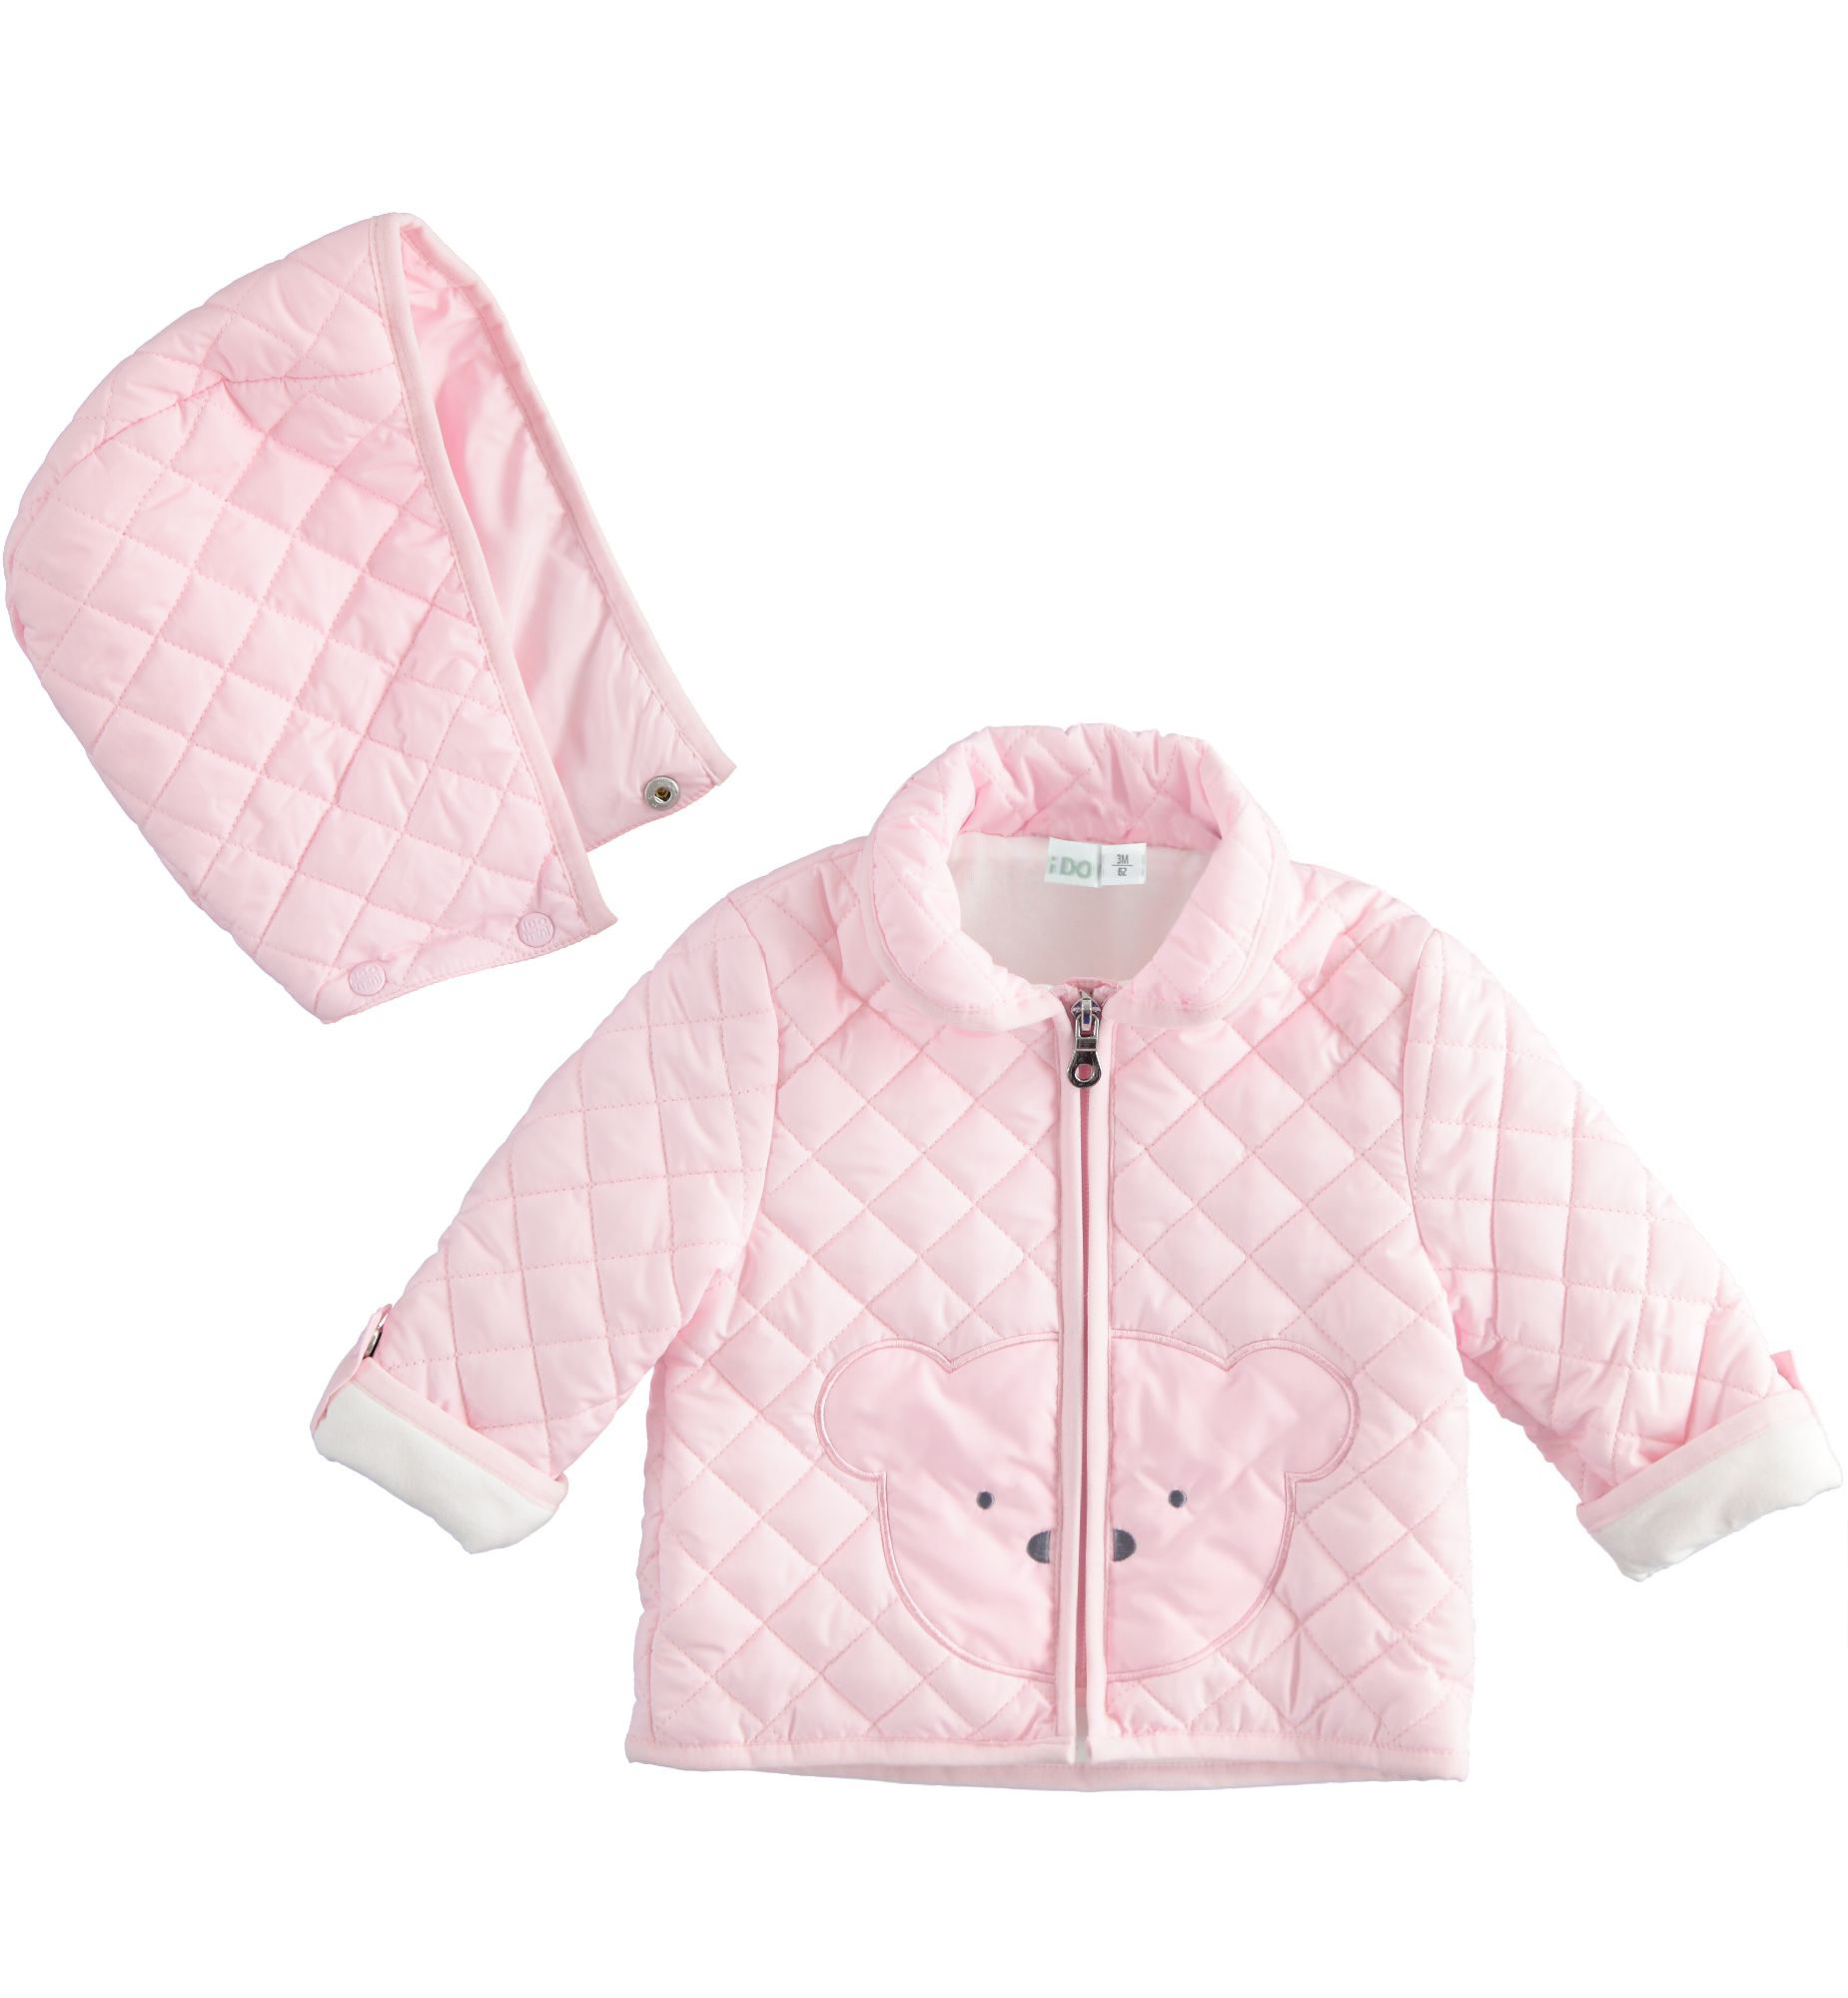 Ido Ido 1292 Pink Bear Quilted Jacket